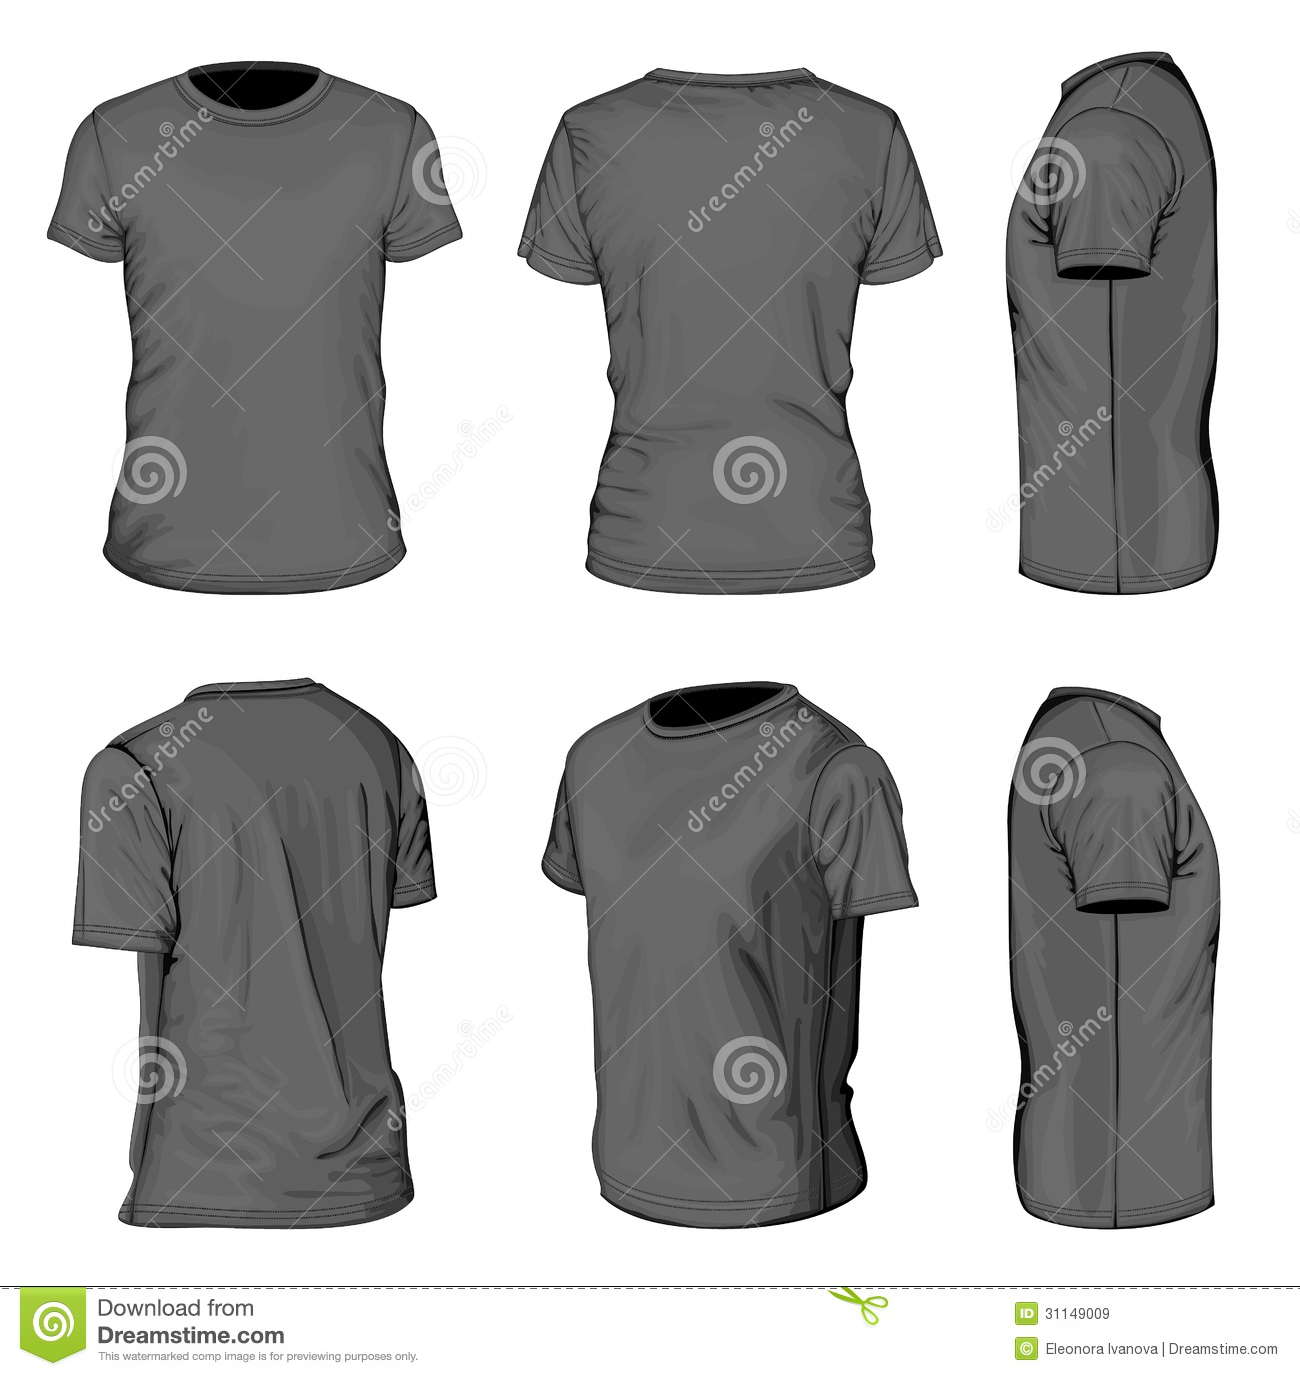 cd2cfdef All views men's black short sleeve t-shirt design templates (front, back,  half-turned and side views). Vector illustration. No mesh.